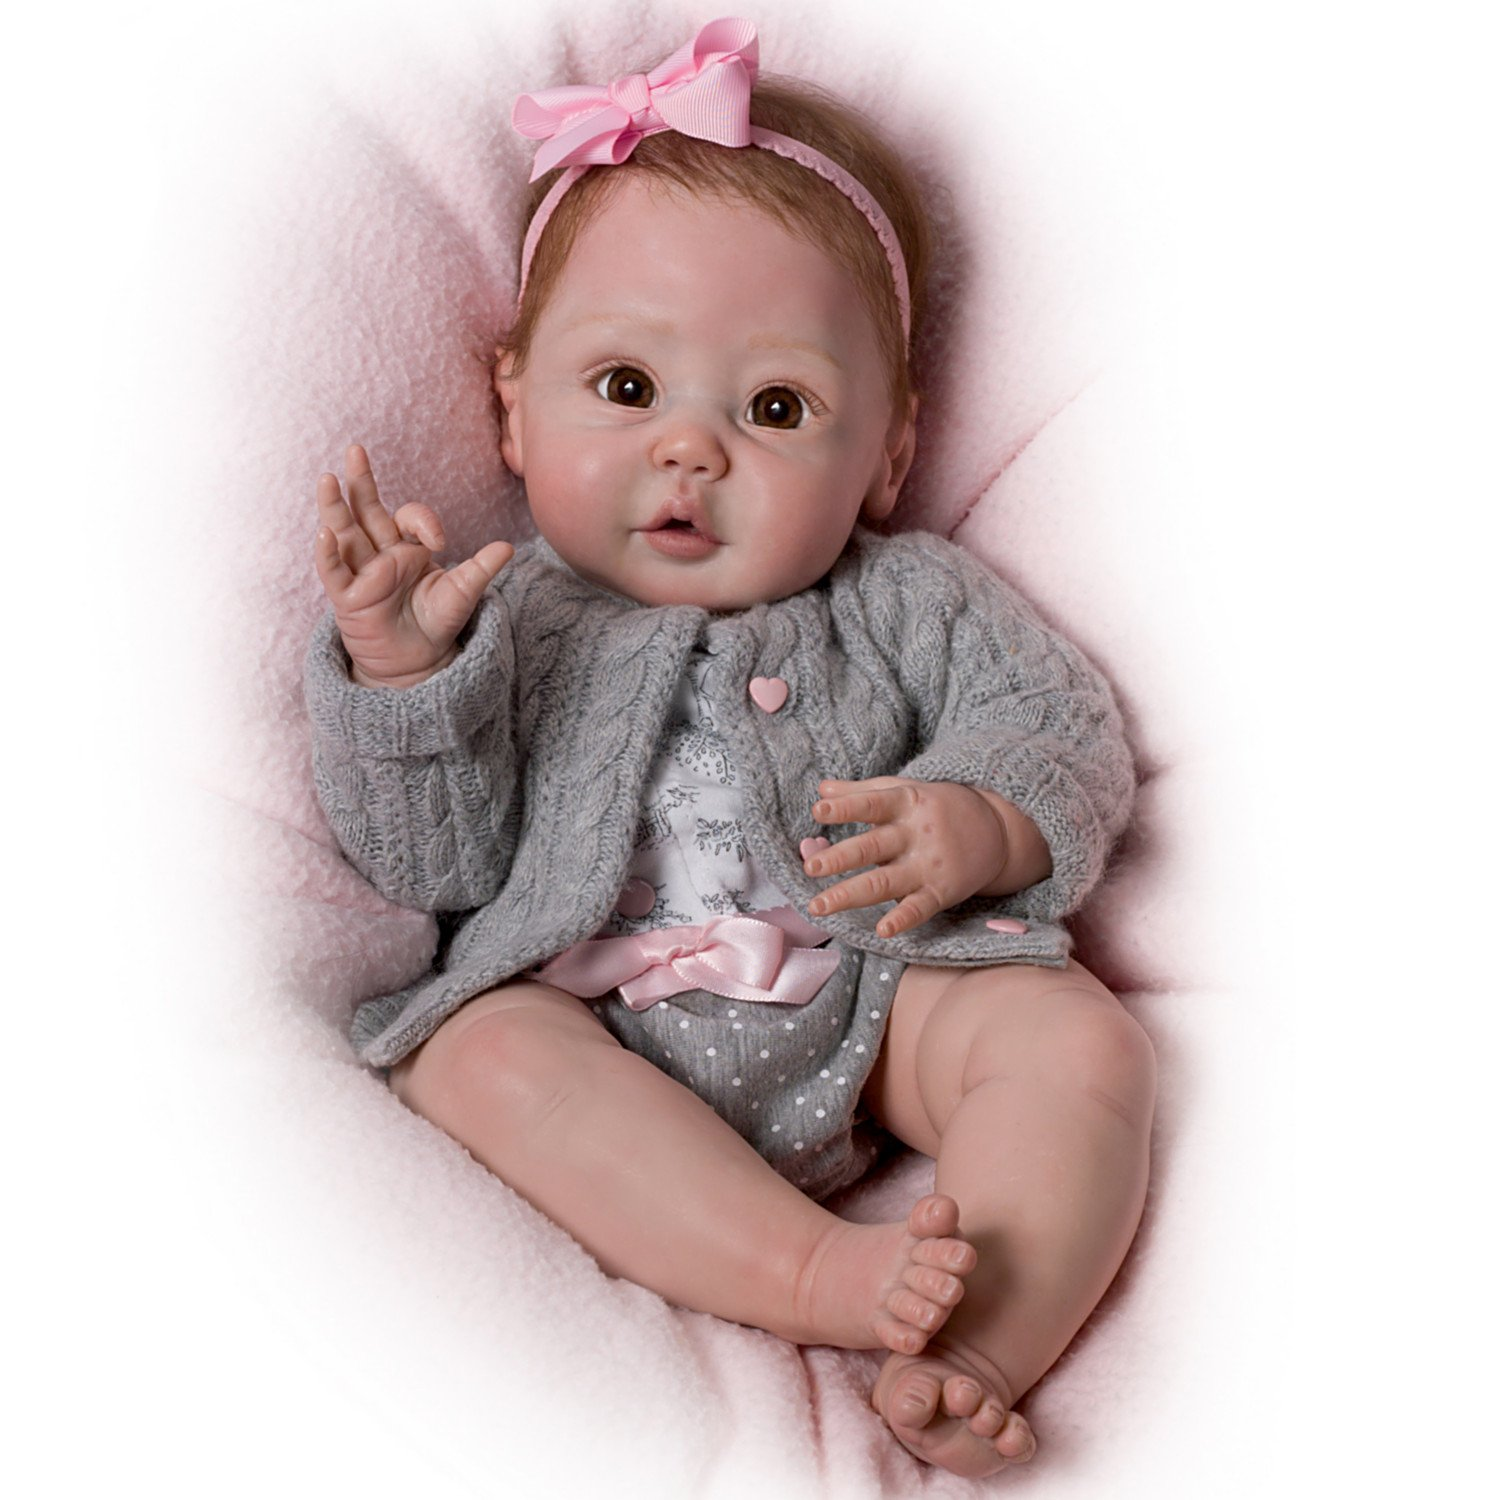 Cuddly Coo! Coos When Cuddled - So Truly Real® Lifelike, Interactive & Realistic Baby Doll 18-inches  by The Ashton-Drake Galleries by The Ashton-Drake Galleries